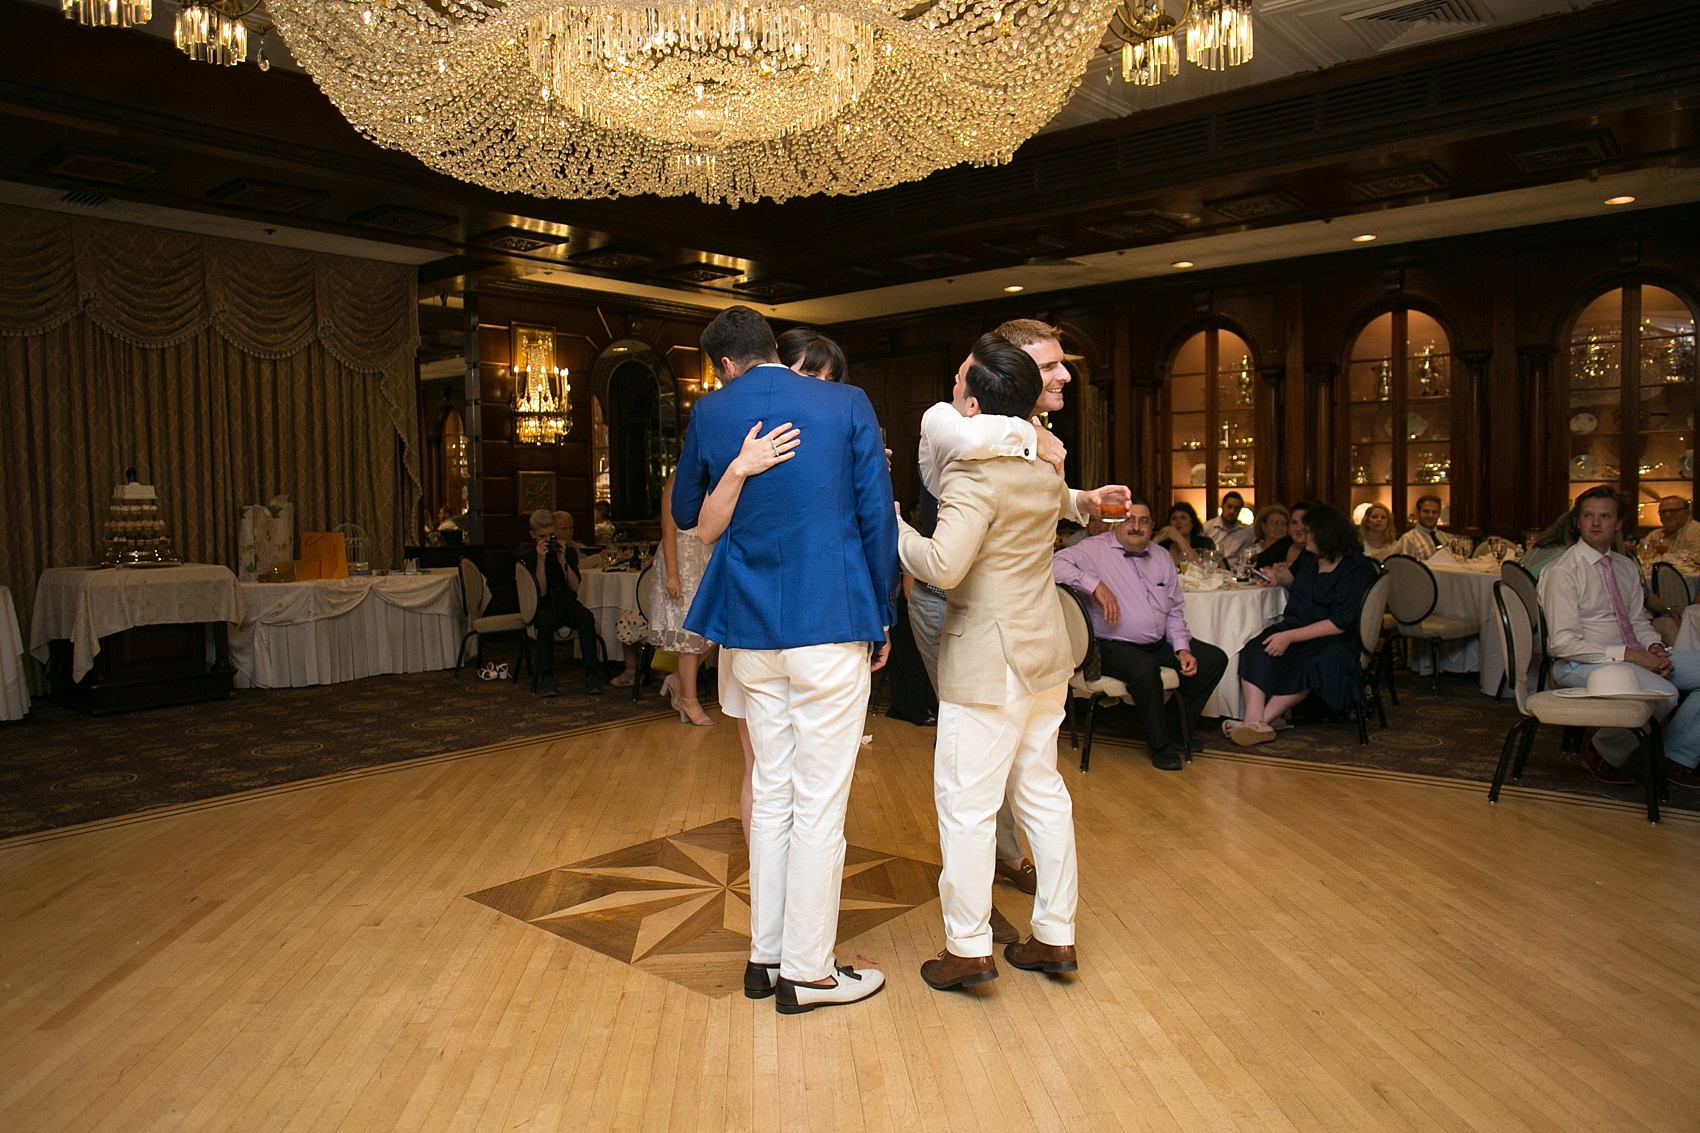 Mikkel Paige Photography photos of a gay wedding at The Manor in West Orange, NJ. Daytime reception with brunch buffet.